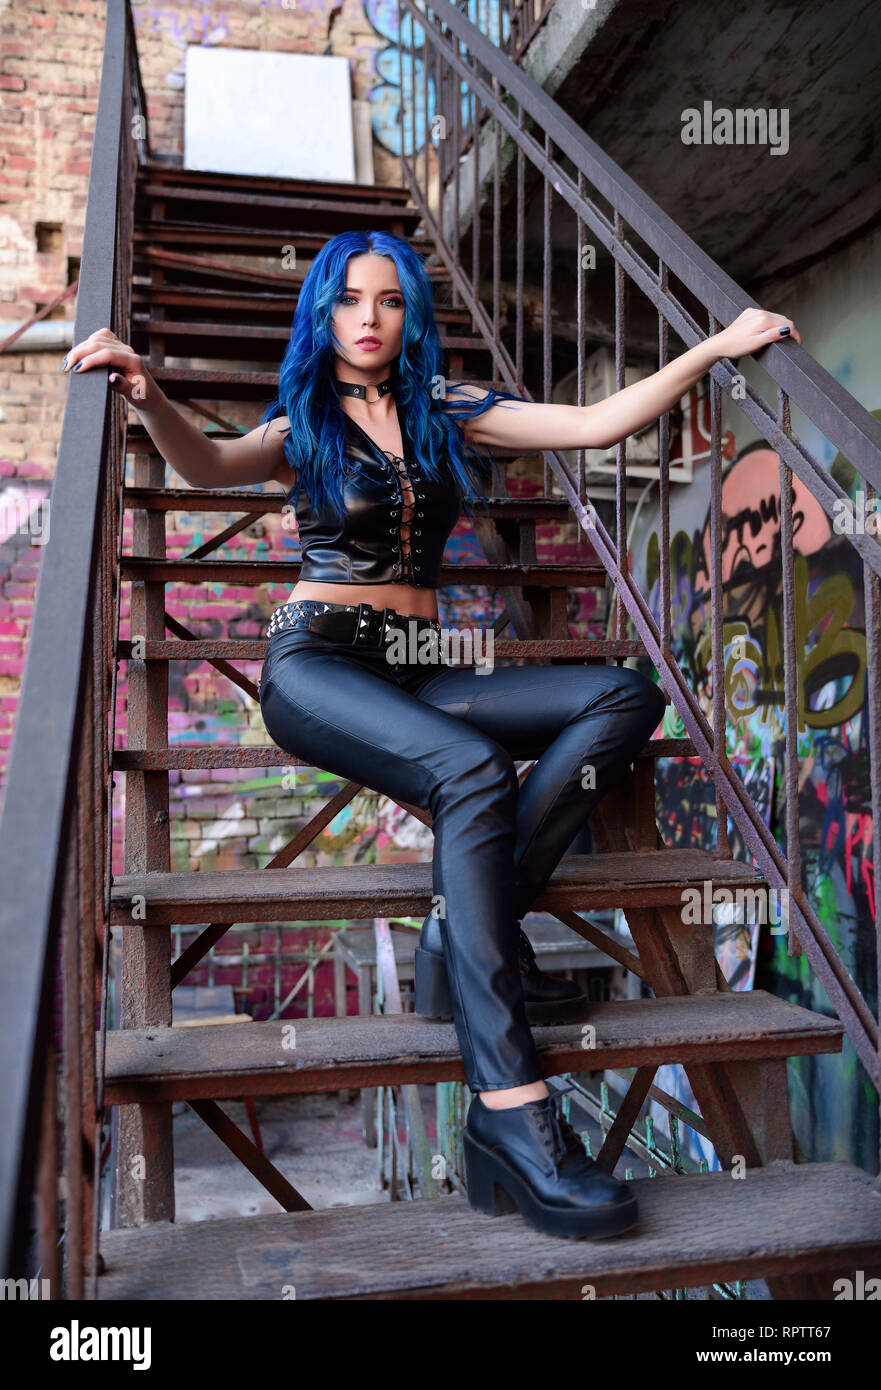 9e37a3521 Beautiful rock girl with blue hair (informal model), dressed in the black  leather